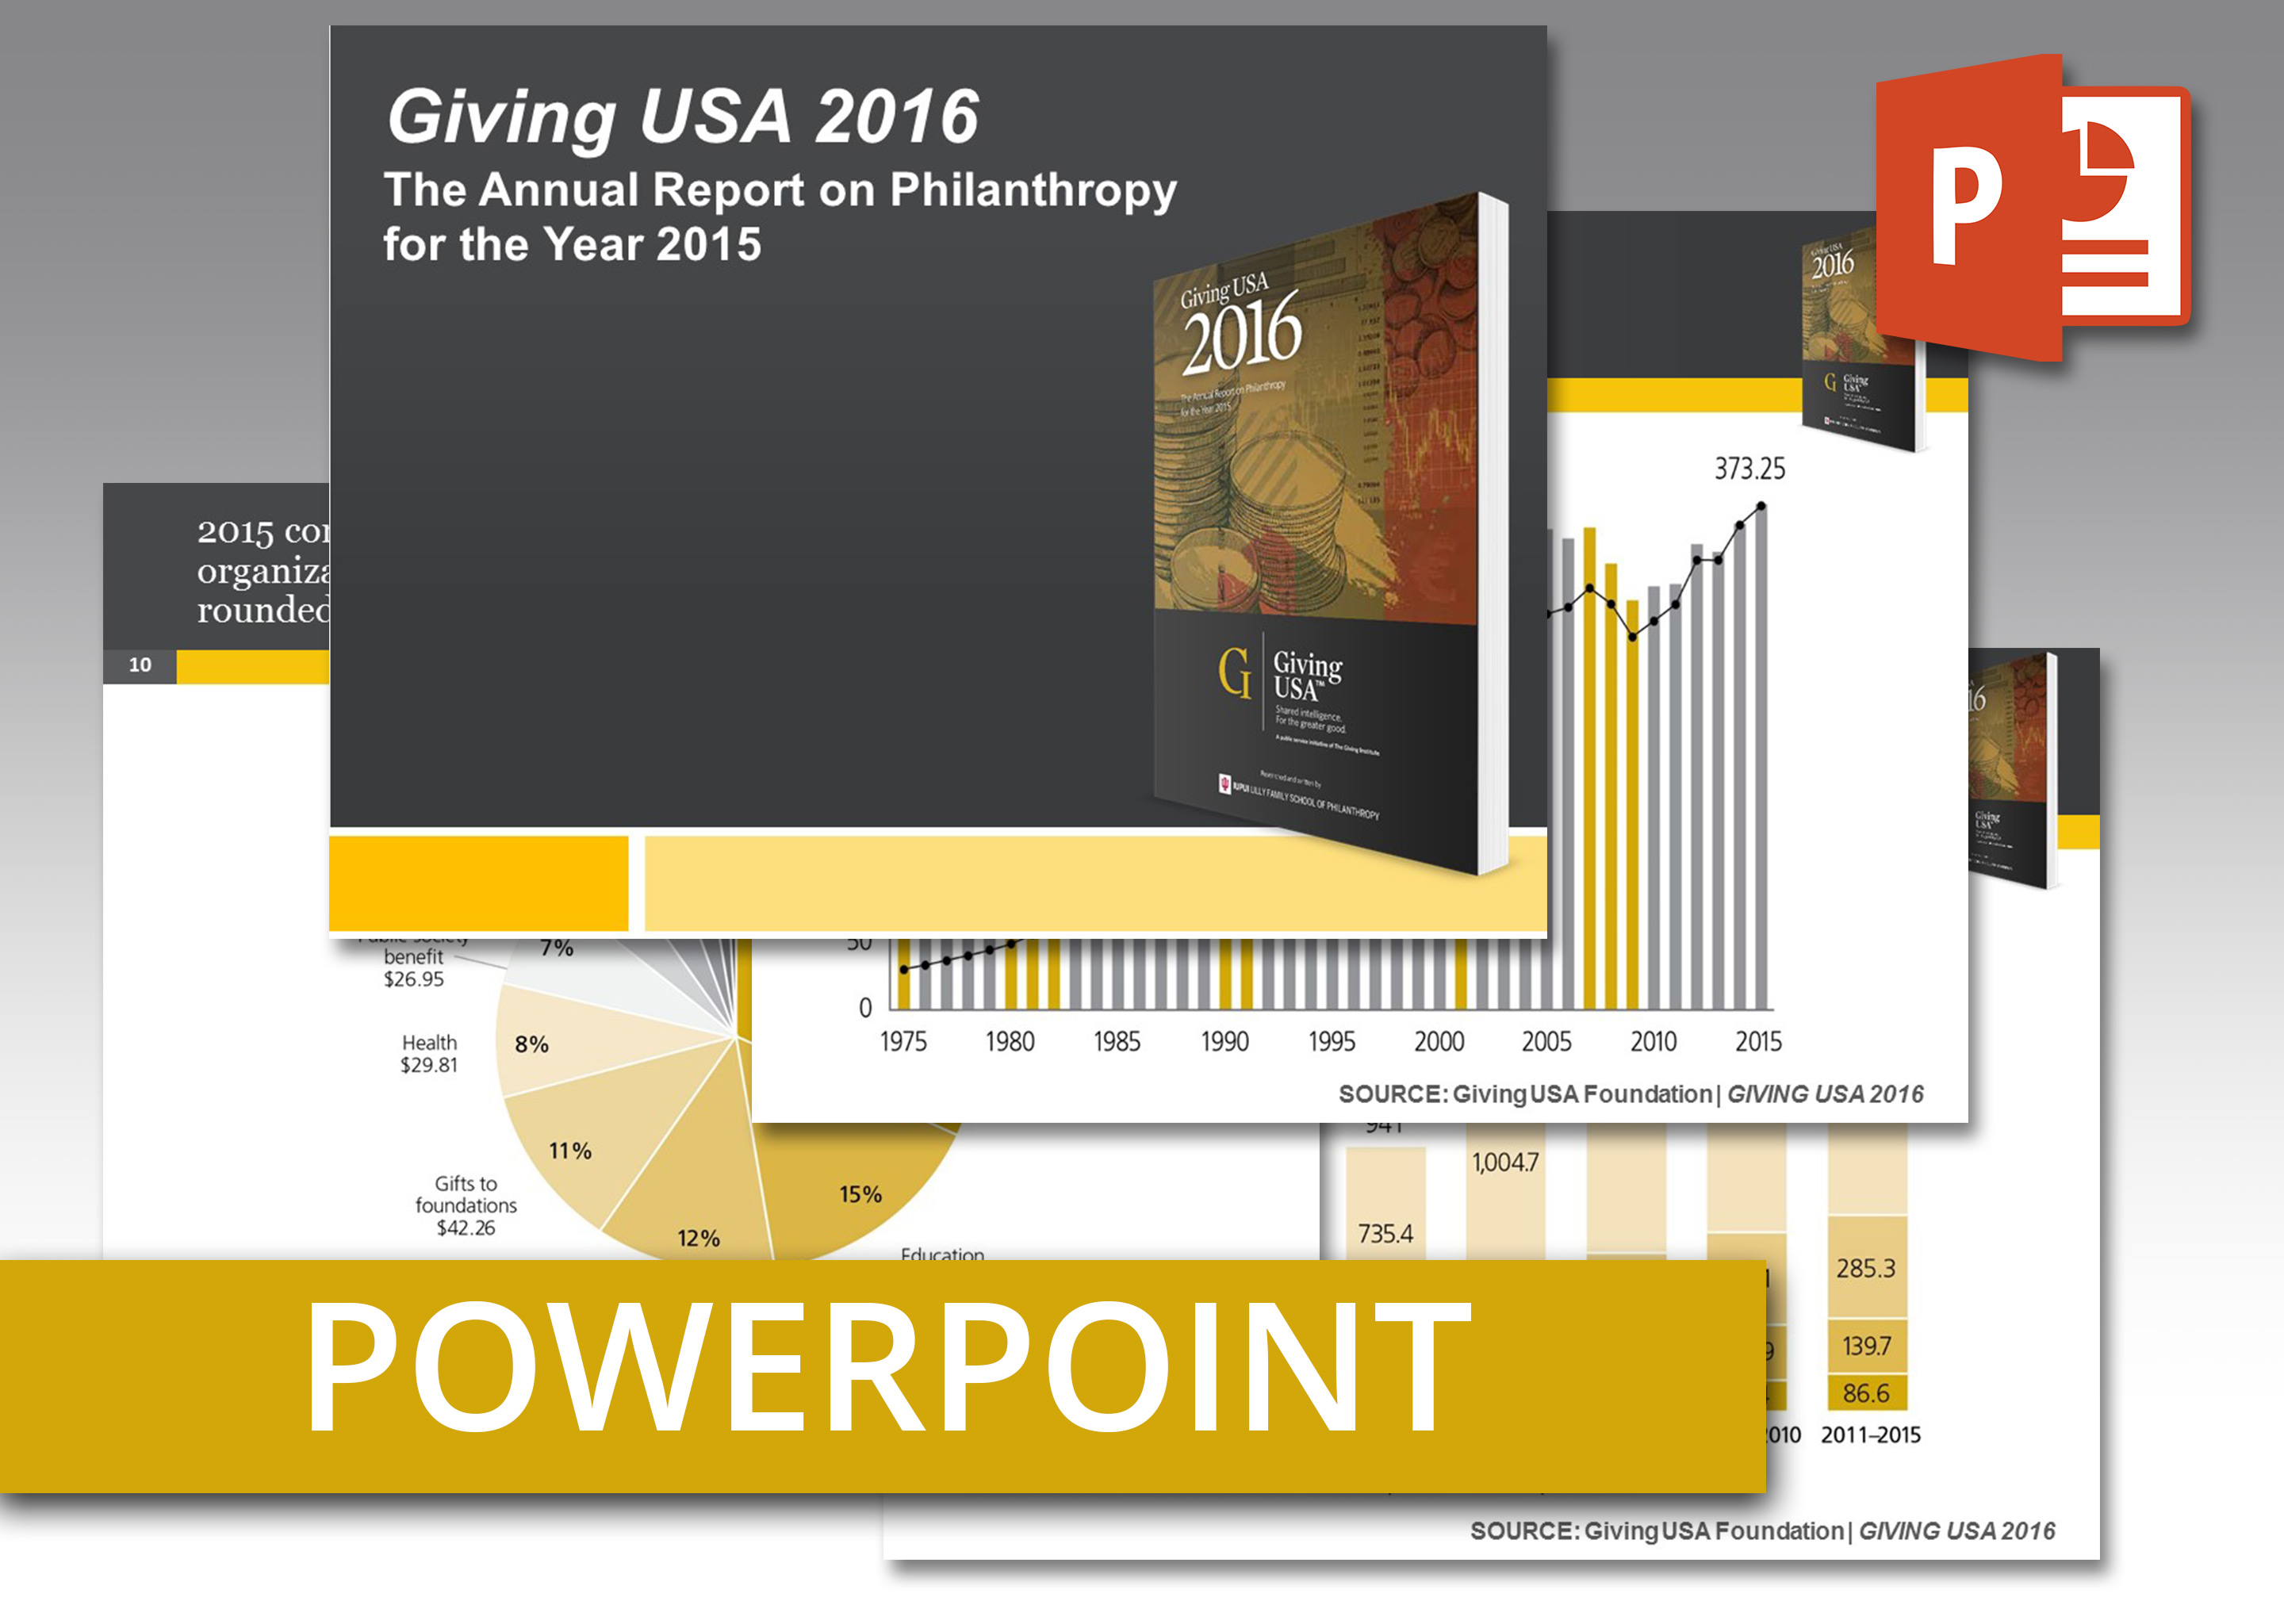 Coolmathgamesus  Inspiring Giving Usa  Powerpoint An Easytouse Presentation Of Report  With Marvelous Giving Usa  Powerpoint An Easytouse Presentation Of Report Findings Including Talking Points With Comely Edward Jenner Powerpoint Also Powerpoint Templates Abstract In Addition Nitro Pdf To Powerpoint And Office Powerpoint Templates Free As Well As Chart Powerpoint Additionally Ms Powerpoint Themes  From Givingusaorg With Coolmathgamesus  Marvelous Giving Usa  Powerpoint An Easytouse Presentation Of Report  With Comely Giving Usa  Powerpoint An Easytouse Presentation Of Report Findings Including Talking Points And Inspiring Edward Jenner Powerpoint Also Powerpoint Templates Abstract In Addition Nitro Pdf To Powerpoint From Givingusaorg